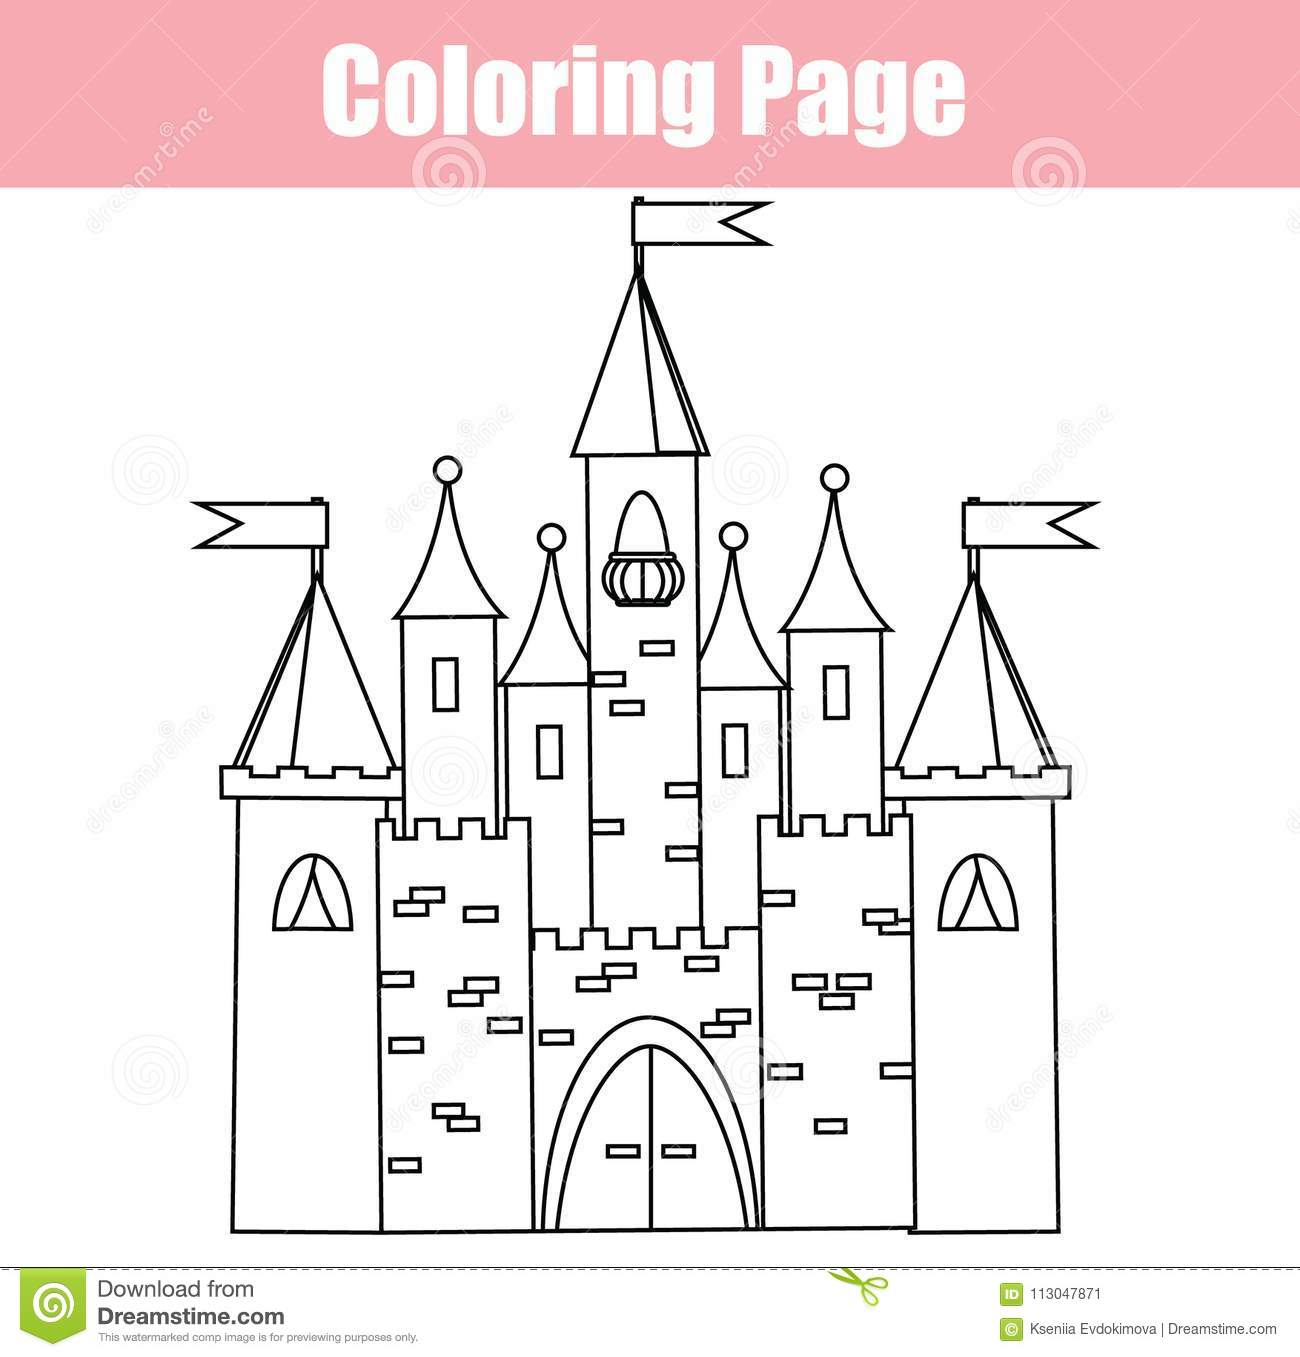 Download Coloring Page Educational Children Game Fairy Castle Drawing Kids Printable Activity